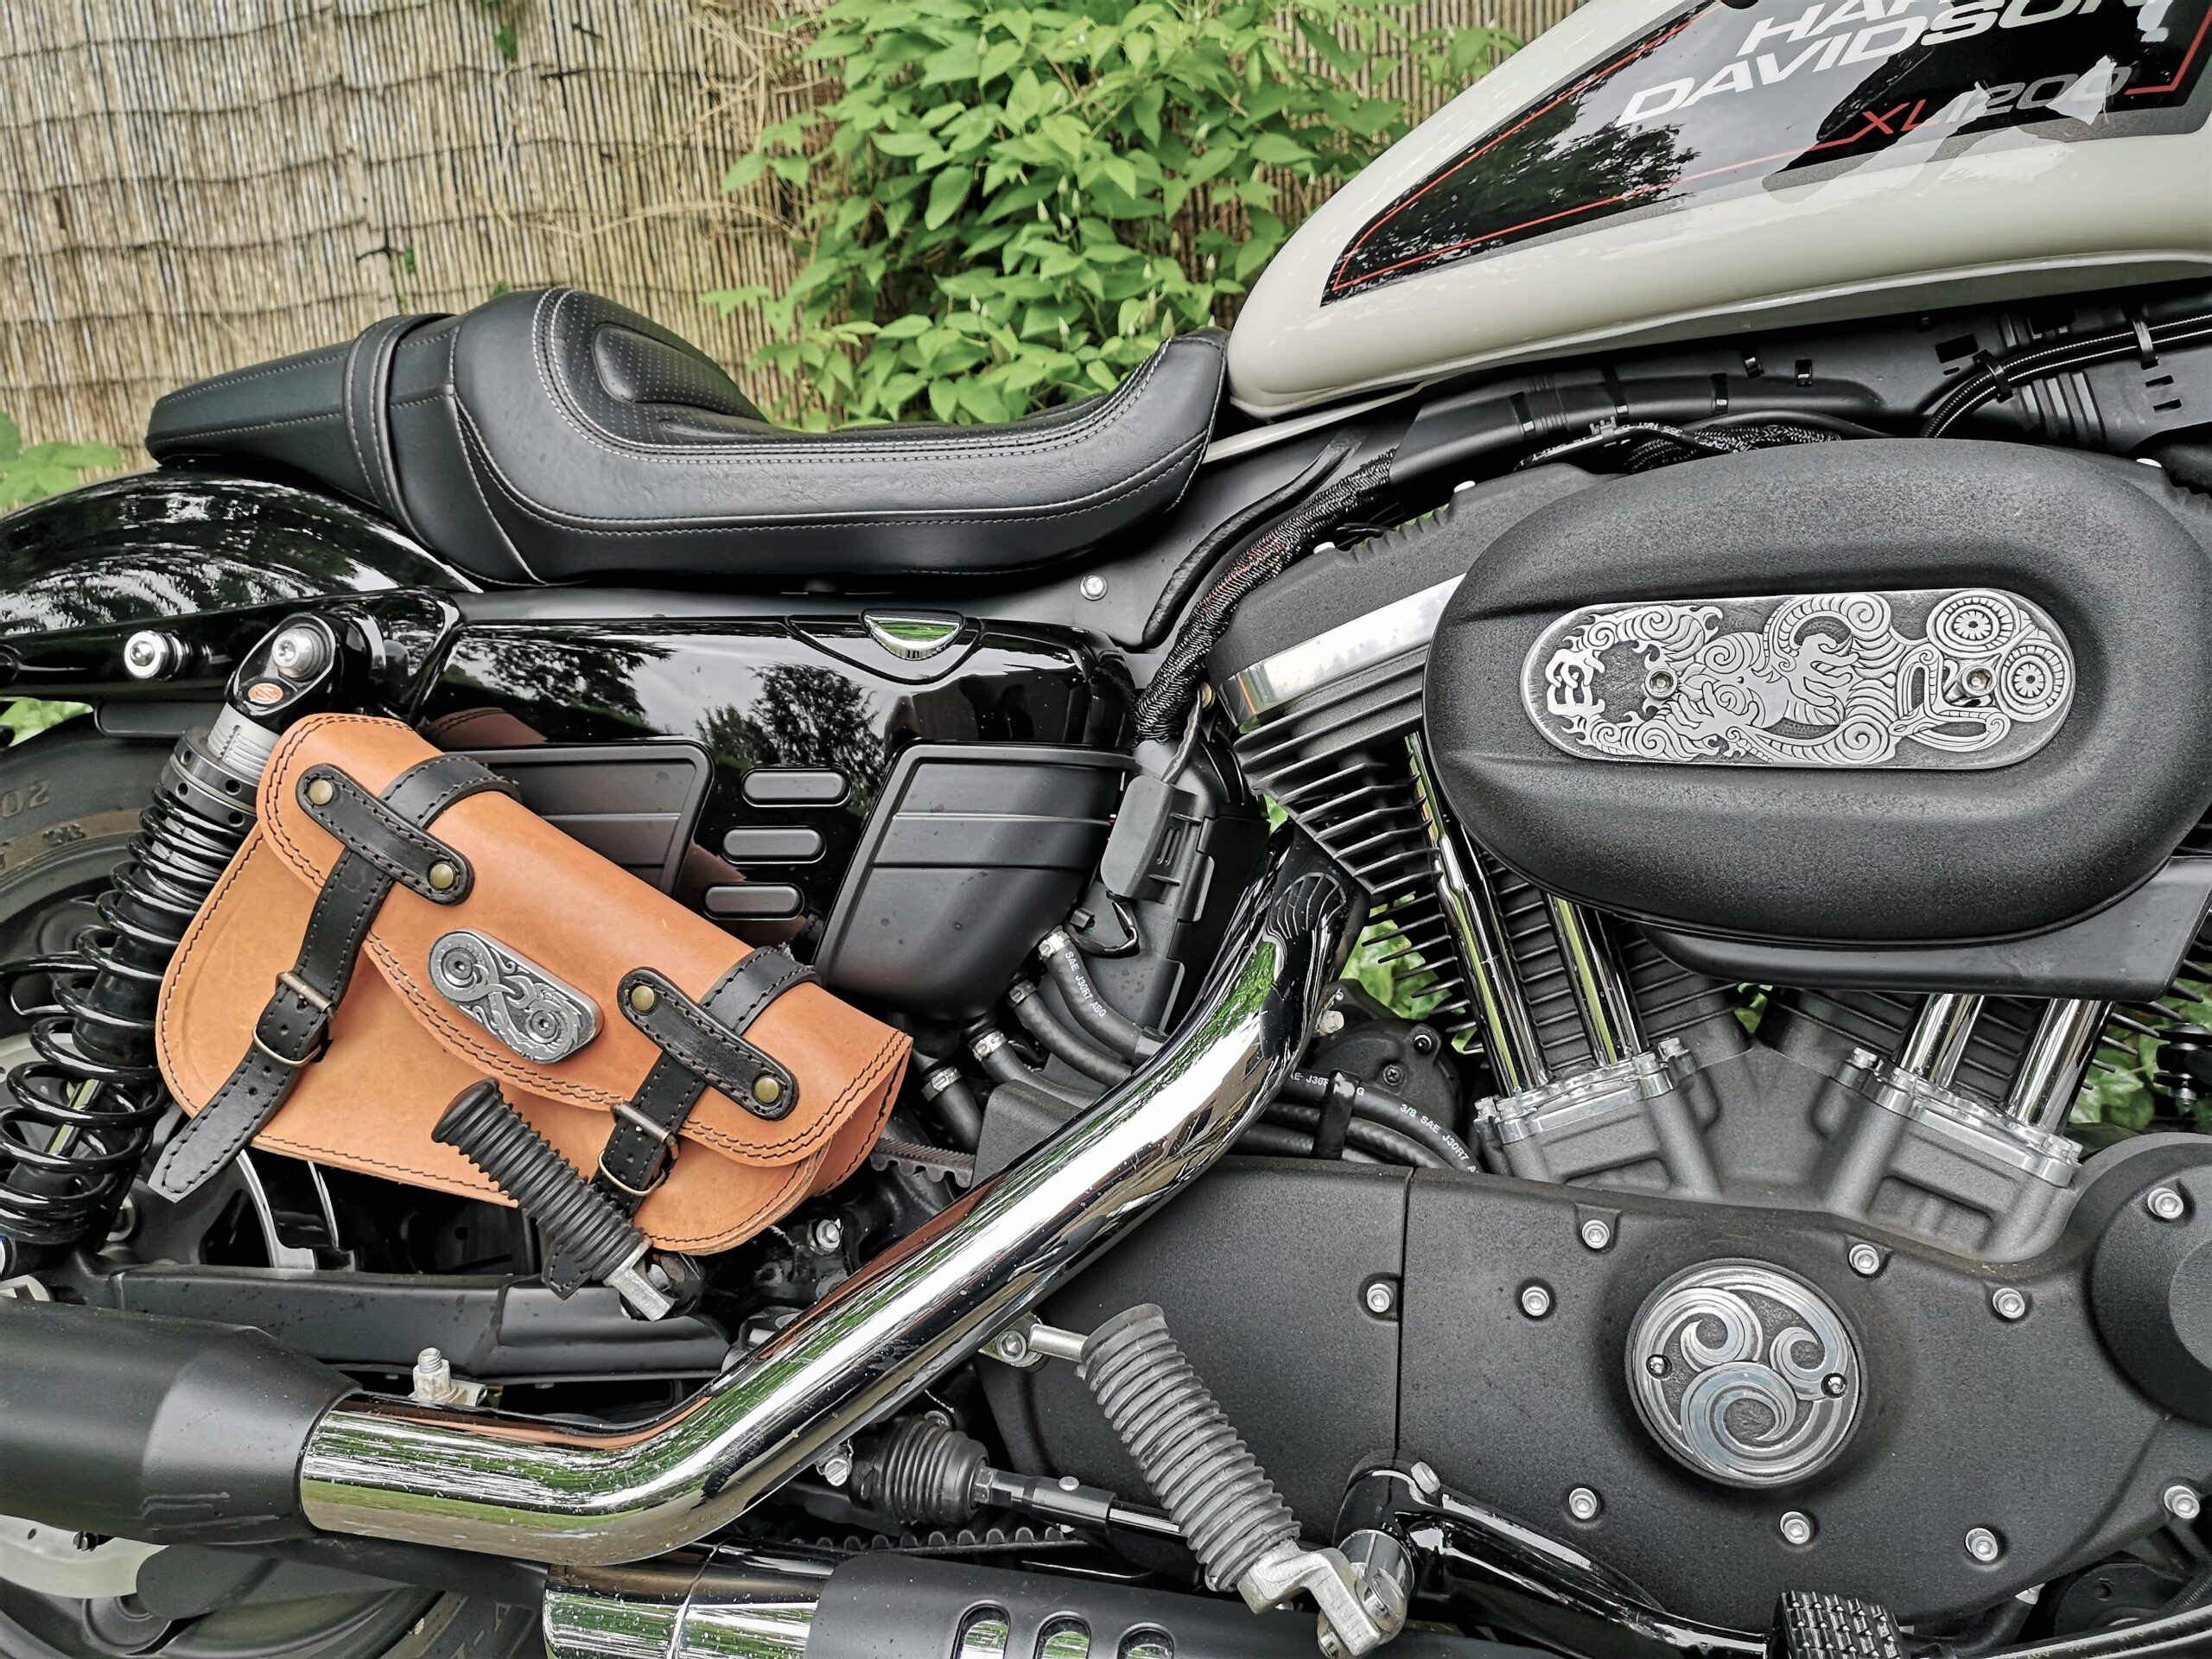 Maori inspired, hand engraved parts on a Harley-Davidson Sportster 1200 Roadster.